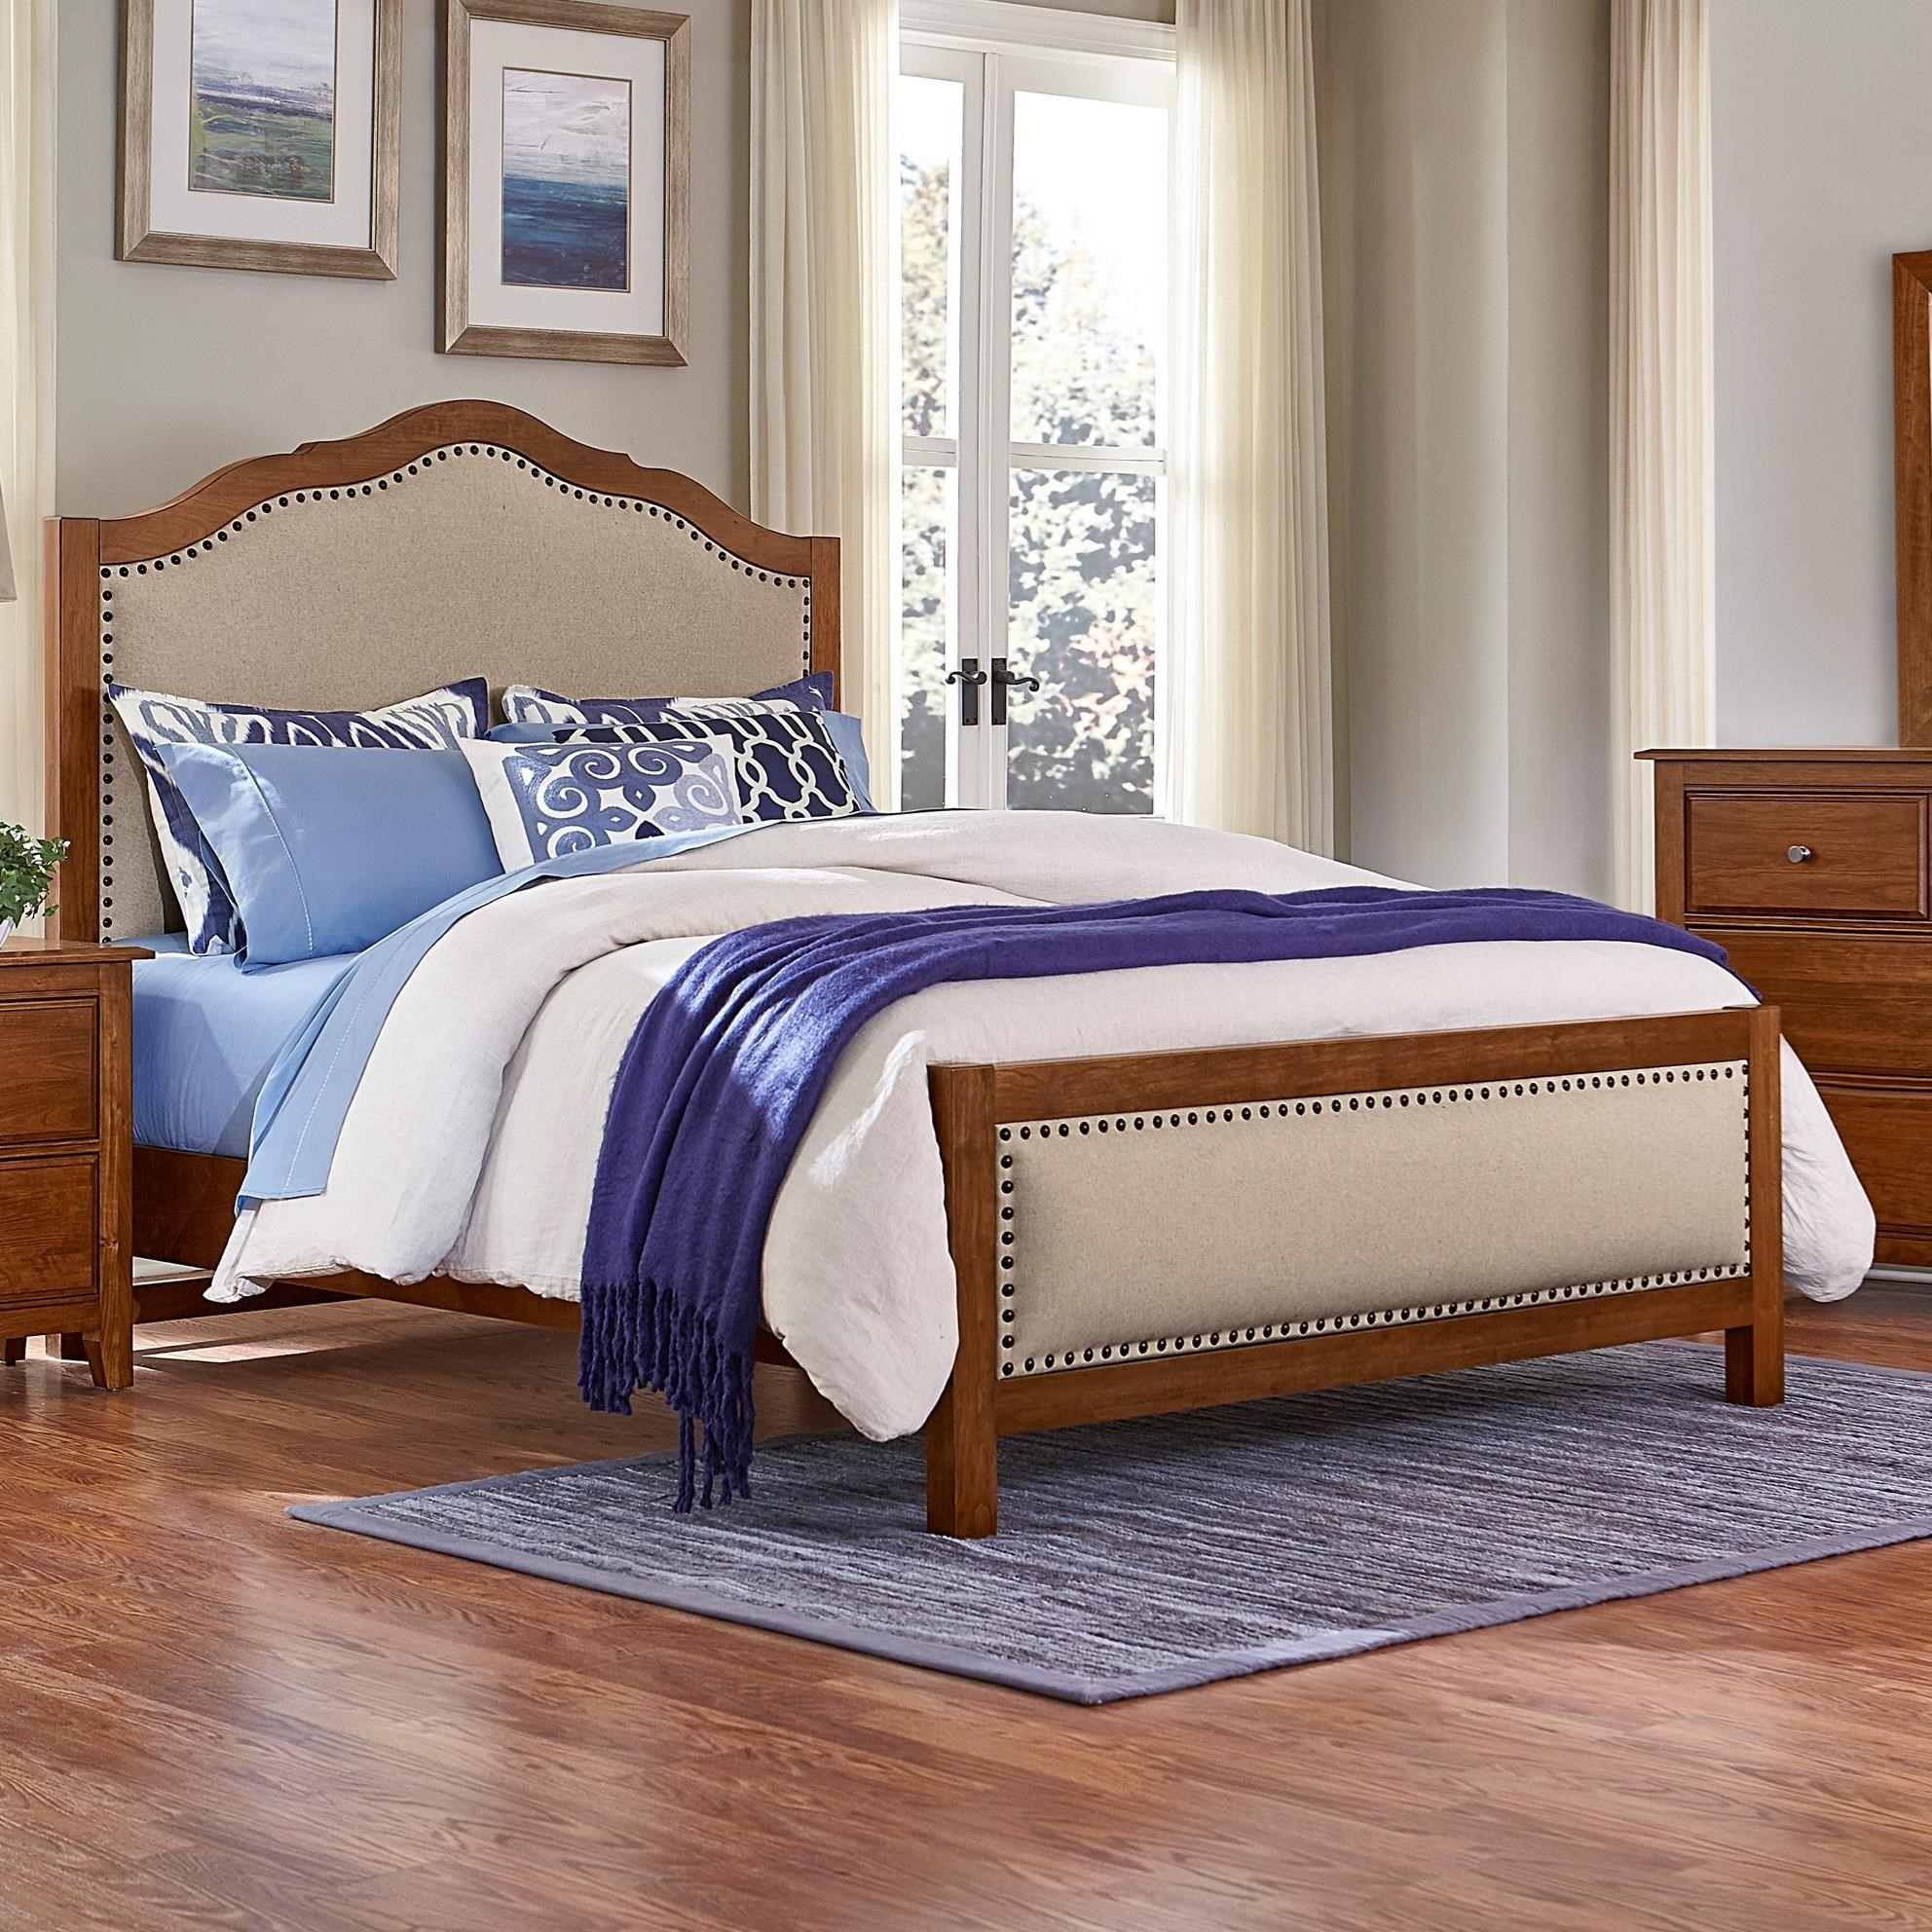 Artisan & Post Artisan Choices King Upholstered Bed - Item Number: 100-661+166+933+MS2